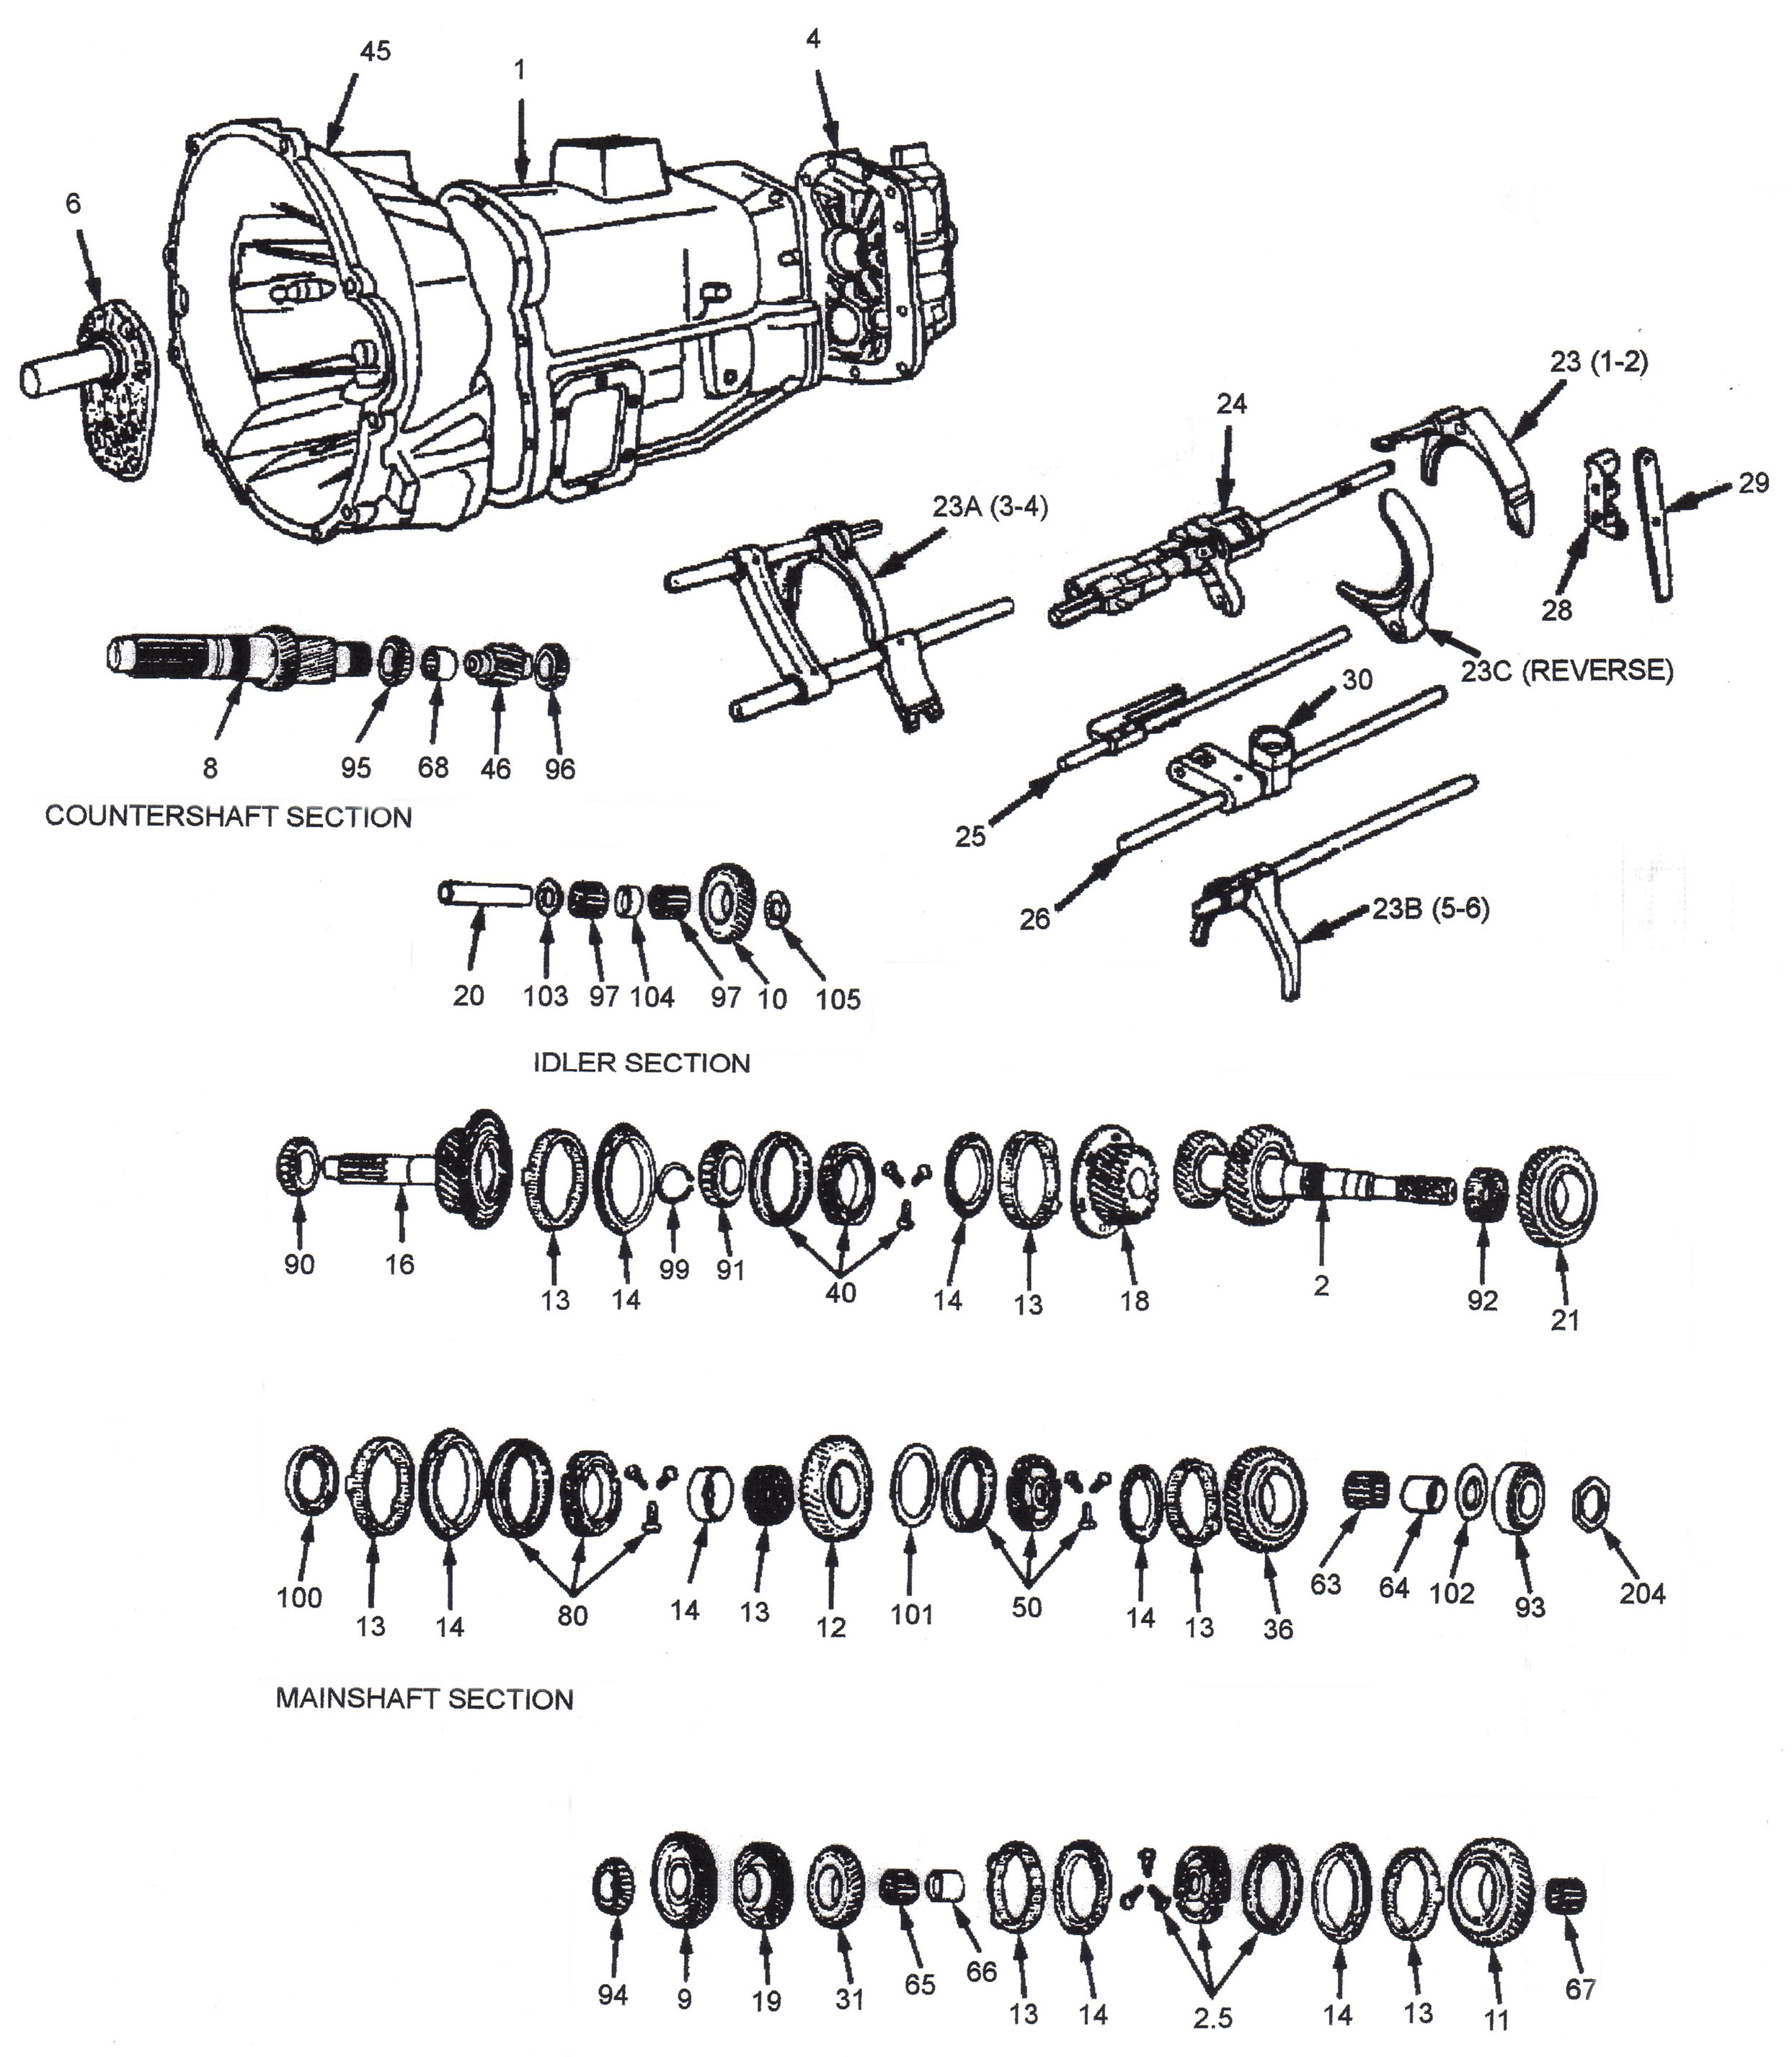 nv5600_parts_ill_lg nv5600 dodge transmission six speed manual transmission rebuild E-TEC L91 Wiring-Diagram at crackthecode.co